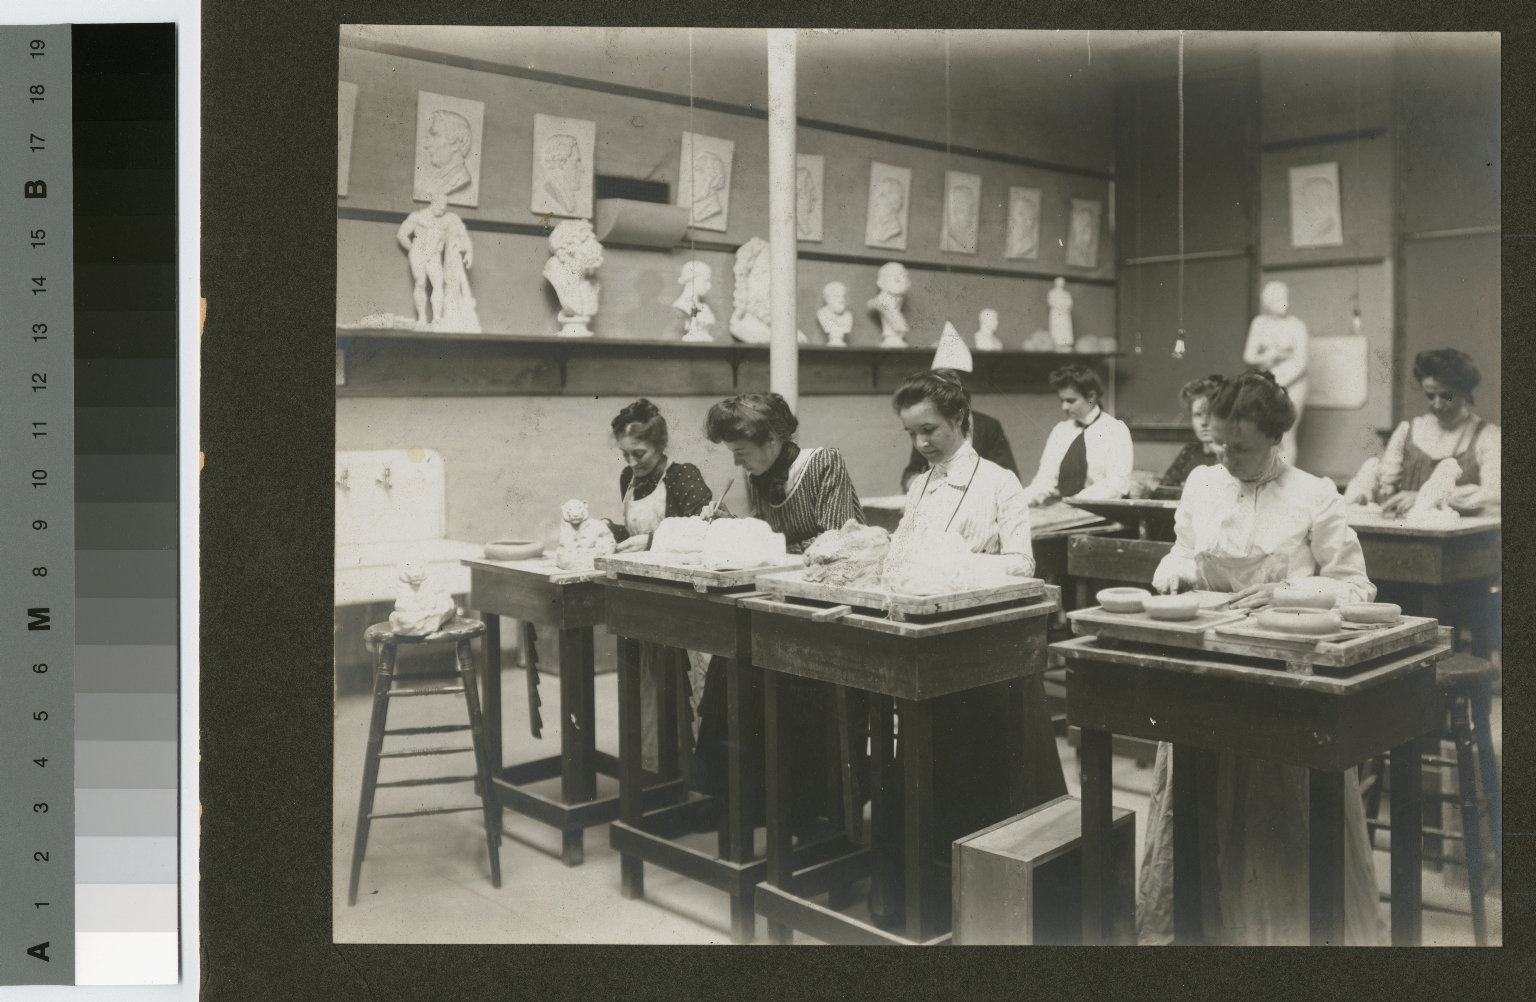 Students working with modeling clay, Department of Industrial and Fine Arts, Rochester Athenaeum and Mechanics Institute